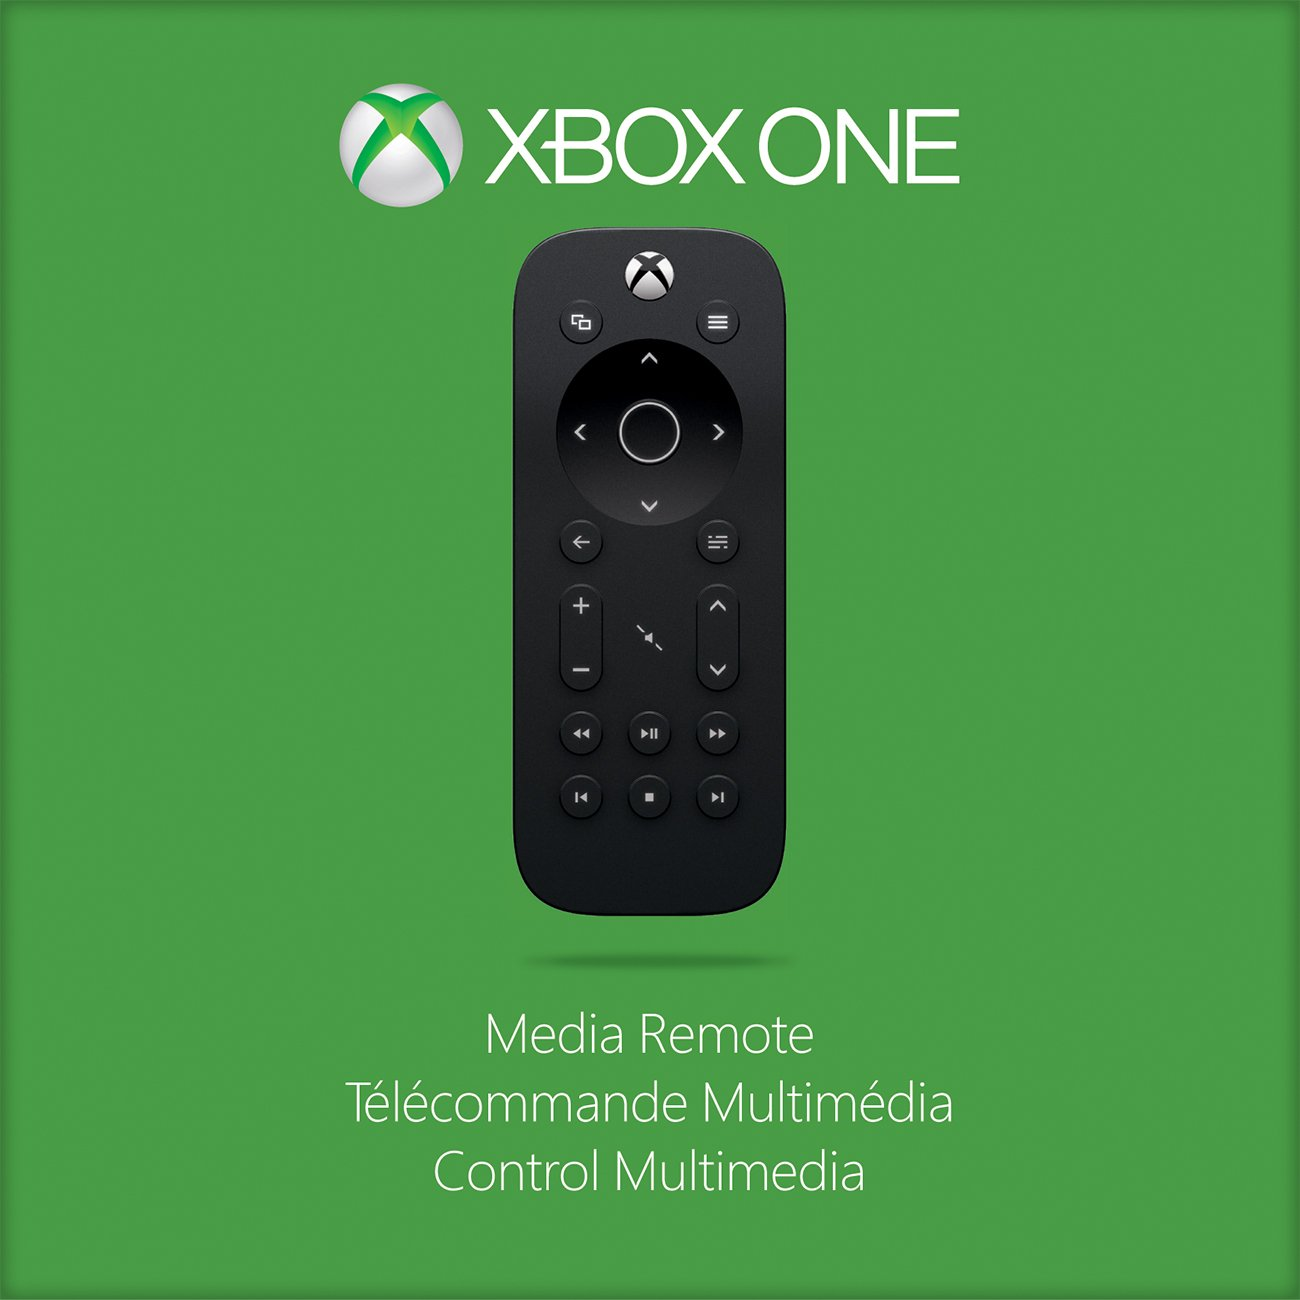 Xbox One Media Remote Release Date (Xbox One)